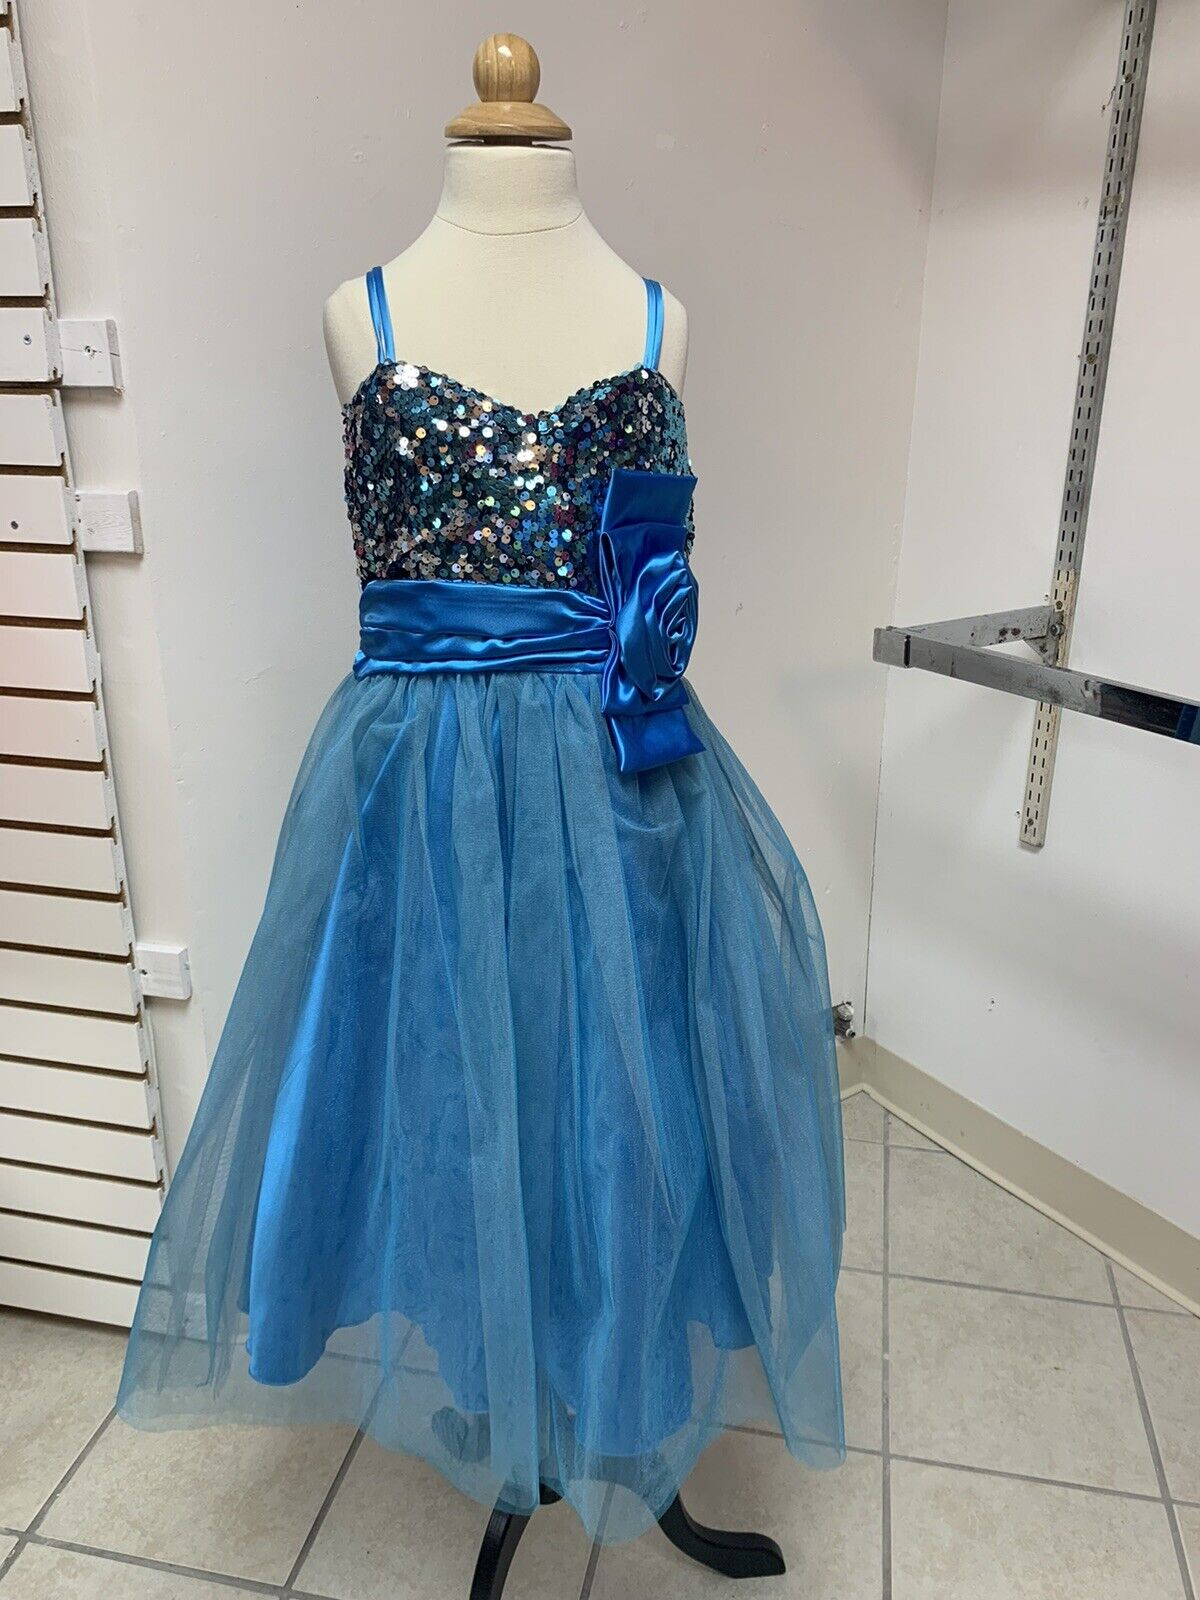 12 Easter Pageant Crowning Tea Party Flowergirl Special Occasion Dance Dress NWT